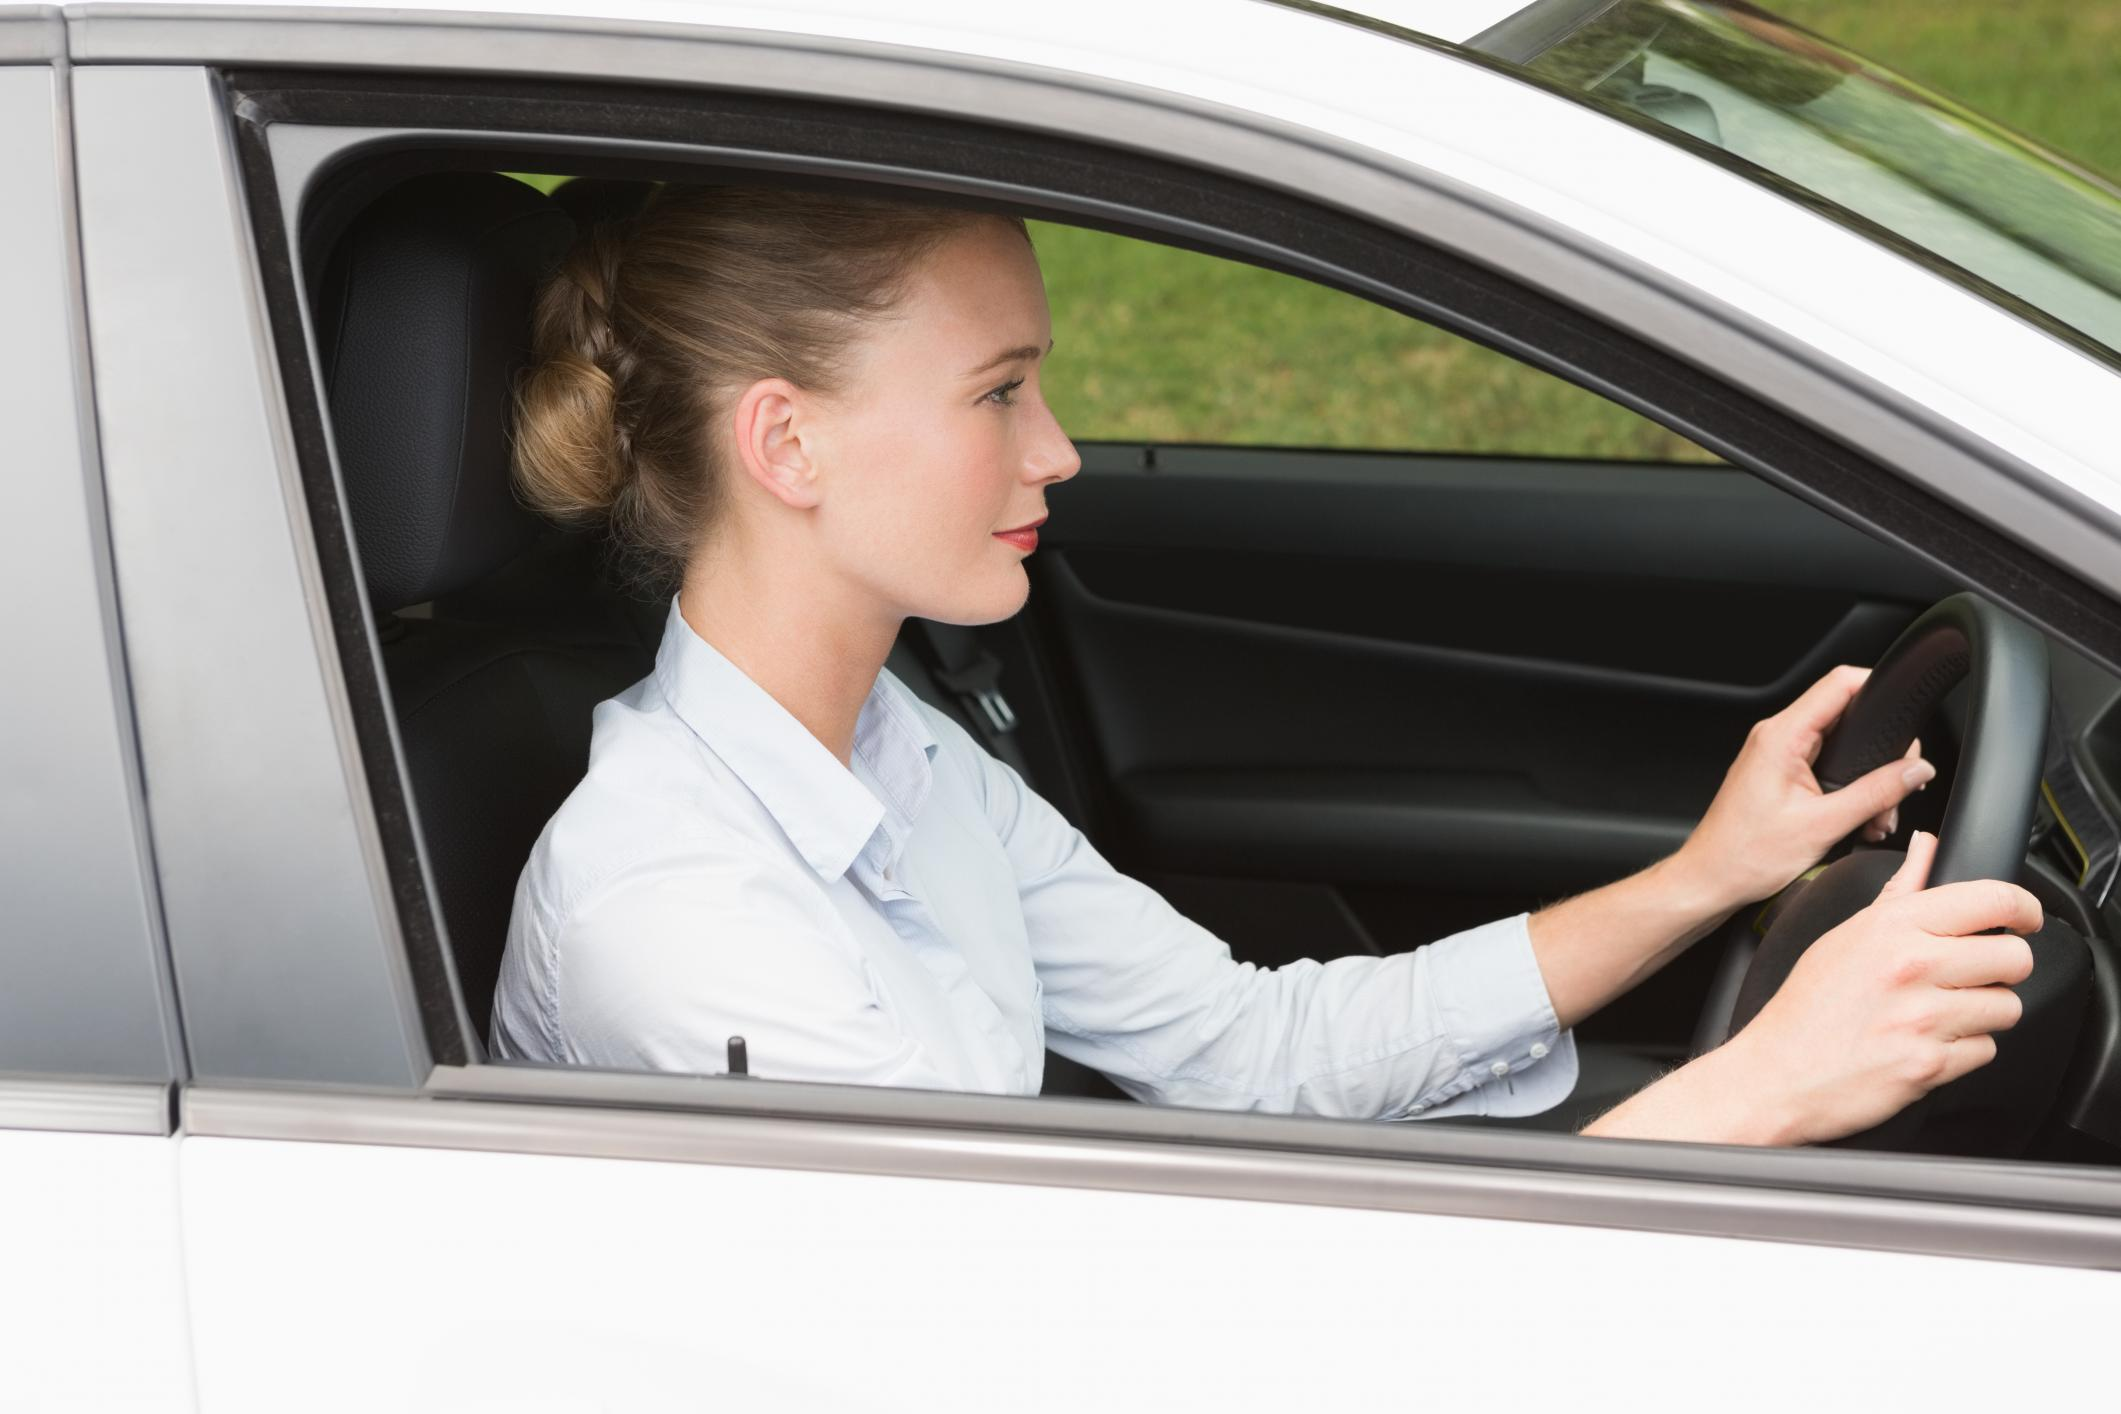 Young Woman Driving Car and Holding Steering Wheel